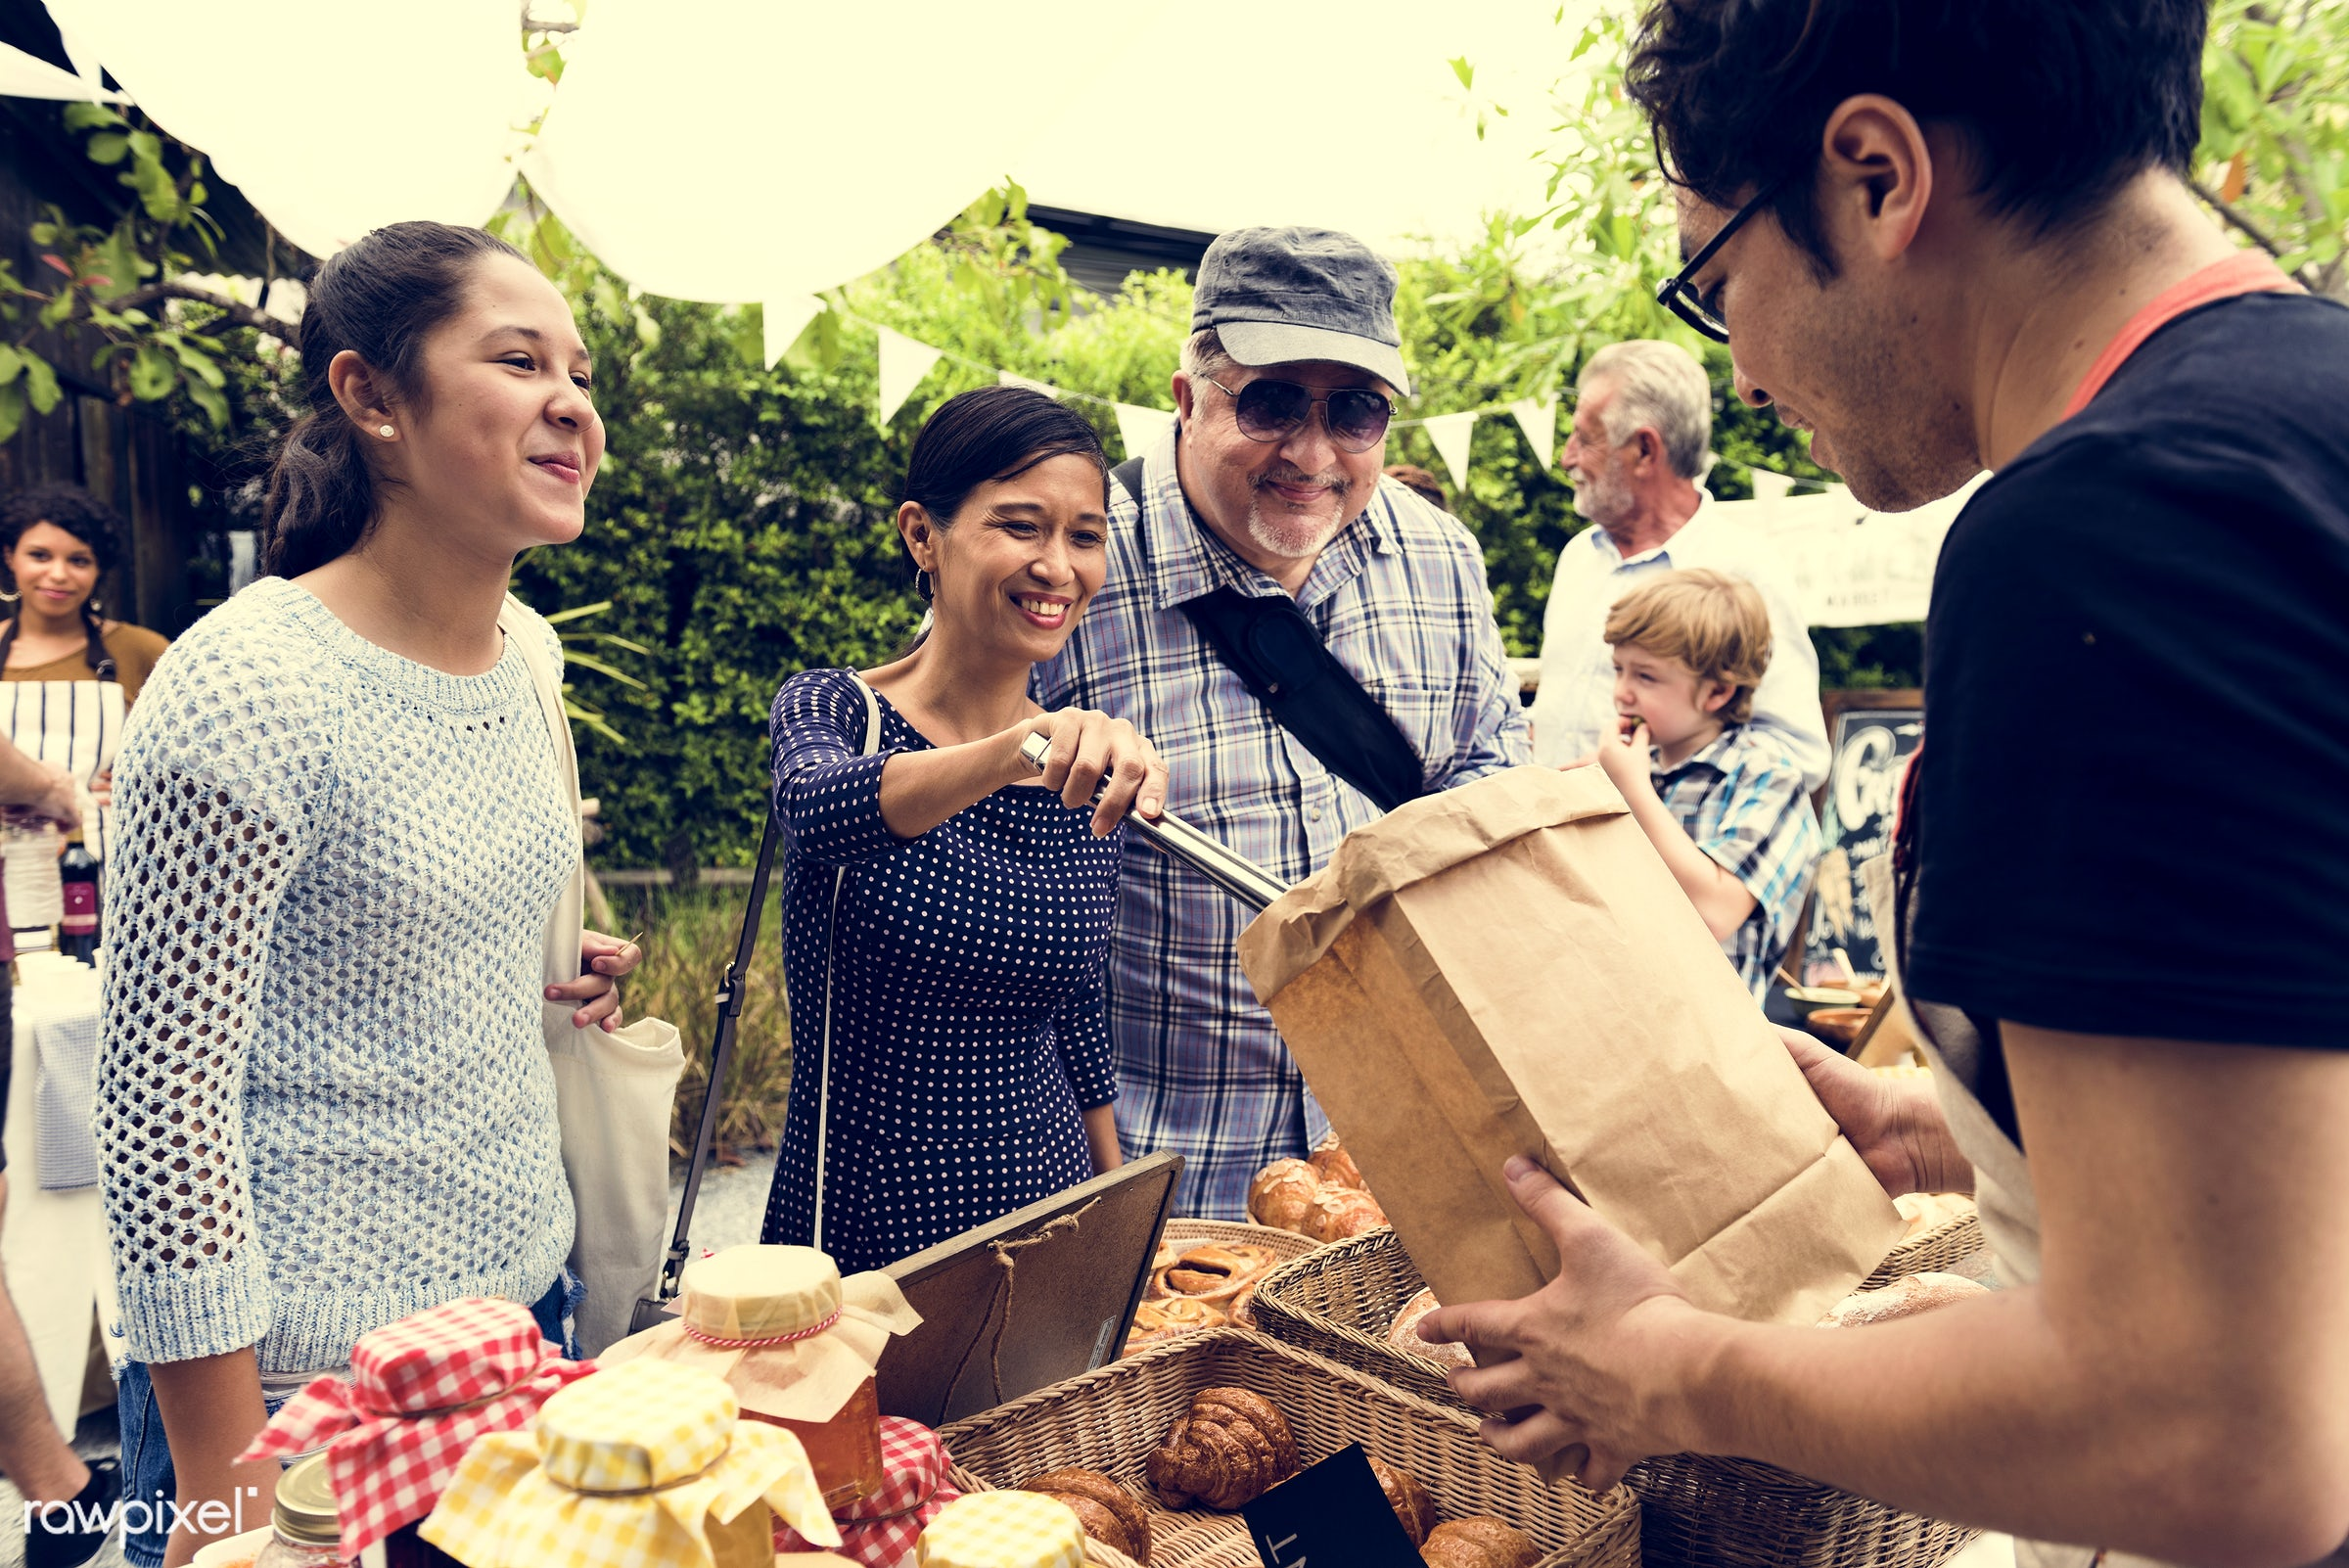 grocery, shop, using, person, stall, cuisine, pastries, consumer, customer, homemade, people, bakery, bread, woman,...